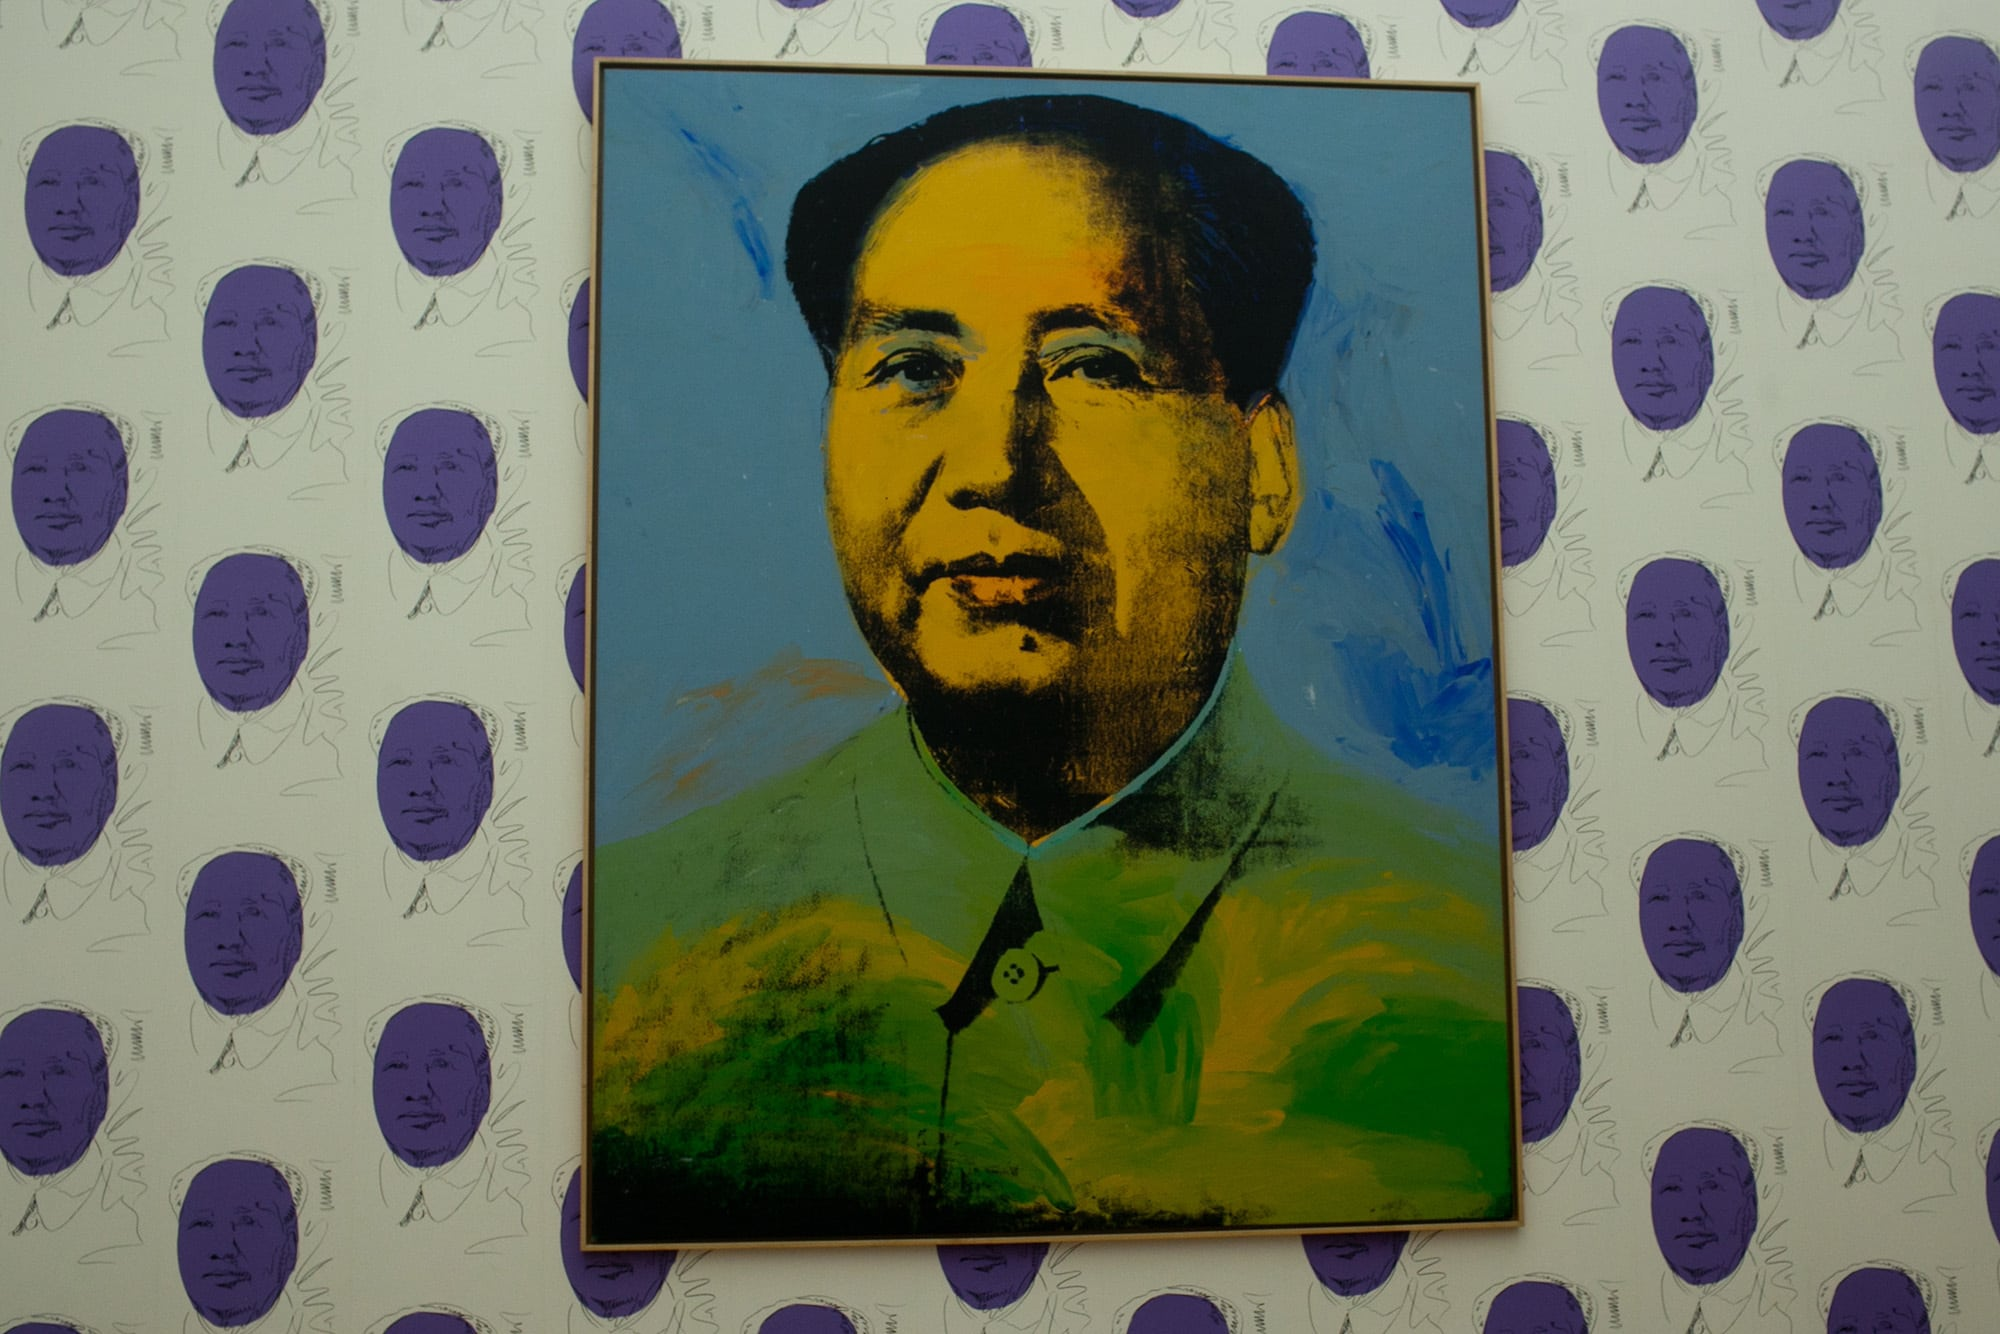 Hamburger Bahnhof contemporary art museum in Berlin, Germany. Andy Worhol's Mao